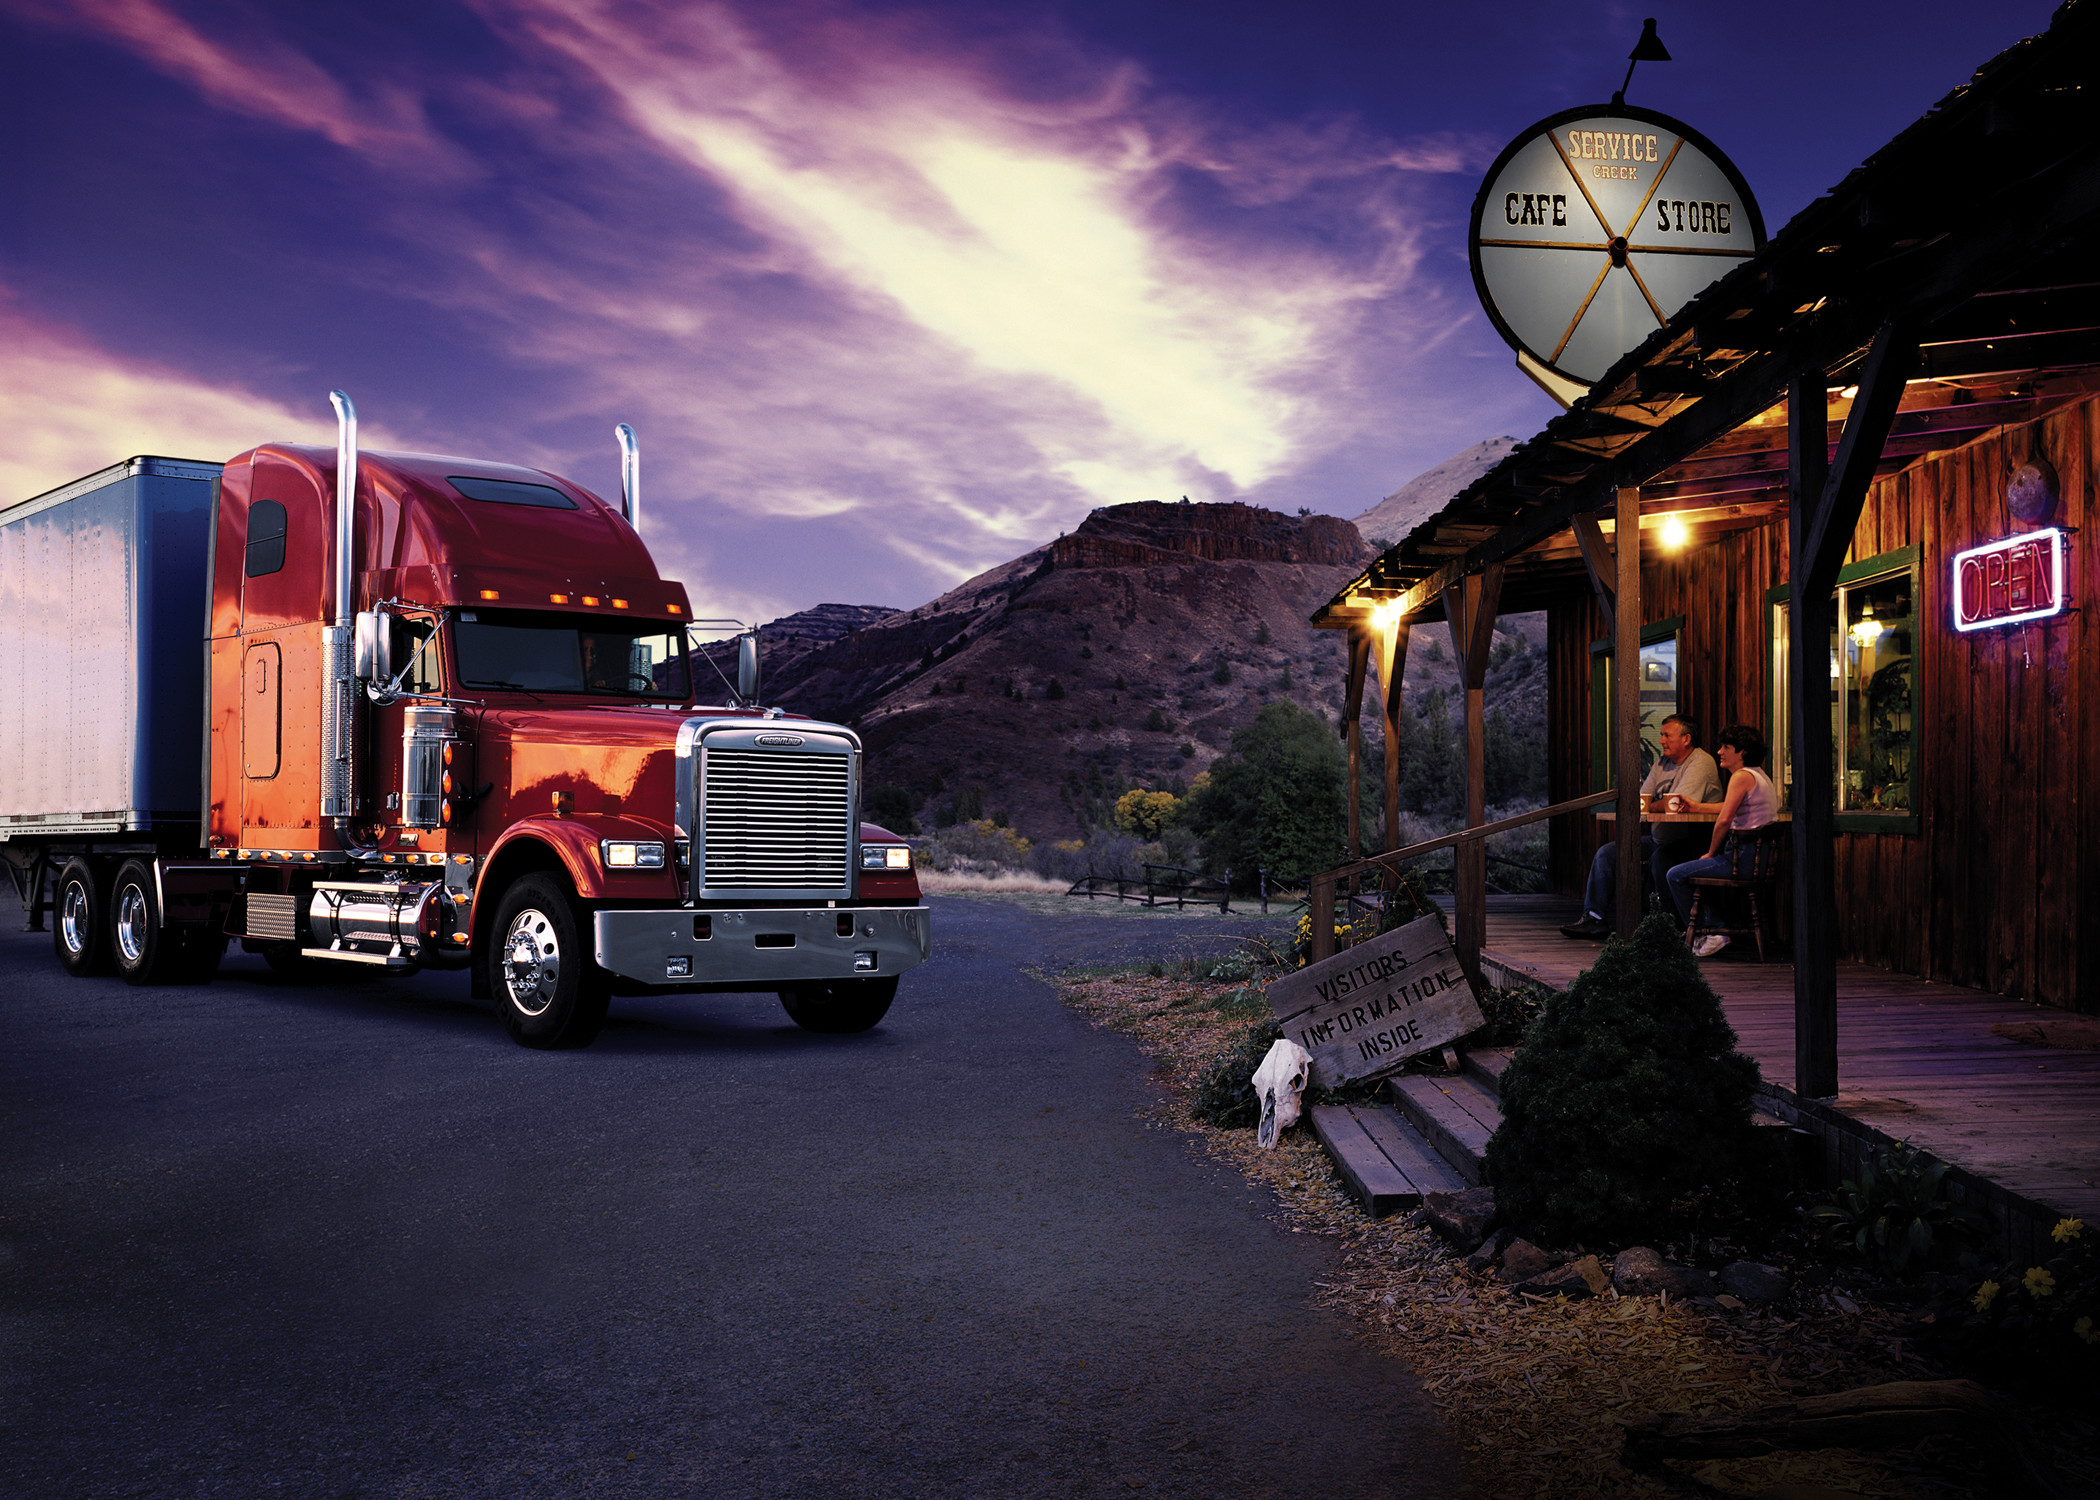 2100x1500 freightliner semi tractor trucks wallpaper background